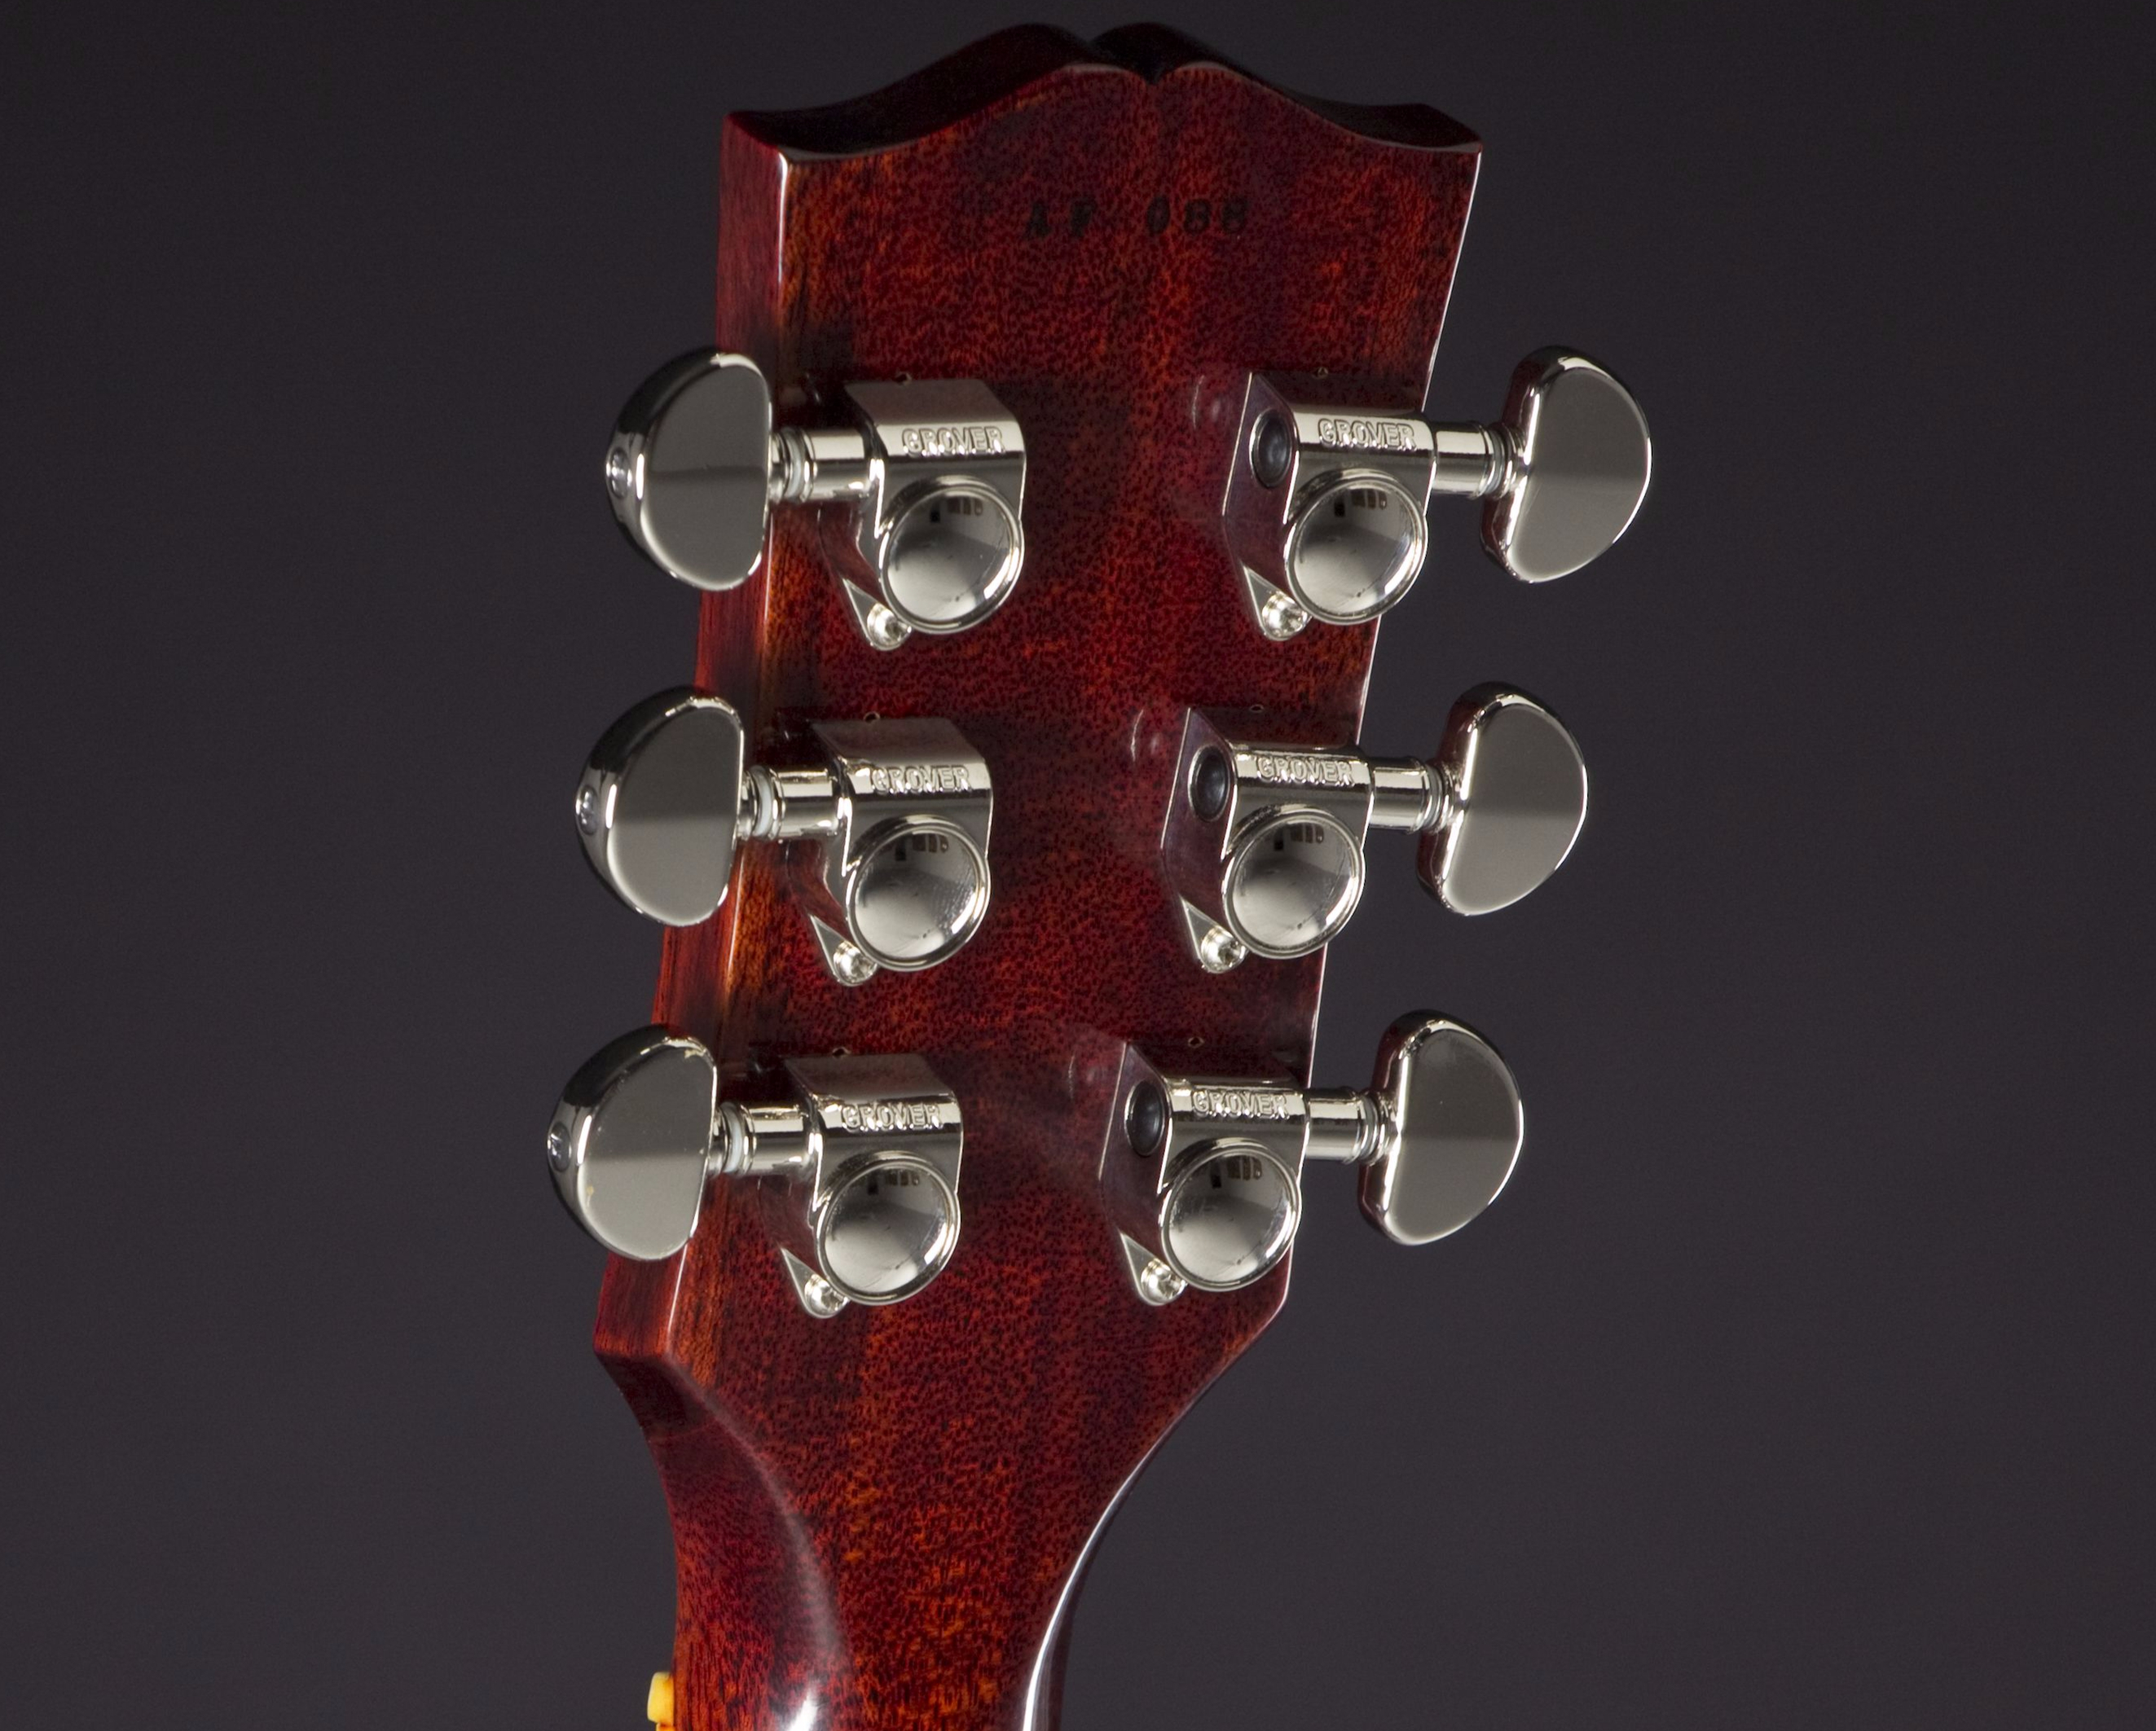 GIBSON Ace Frehley 1959 Les Paul Standard #AF088 Headstock Detail